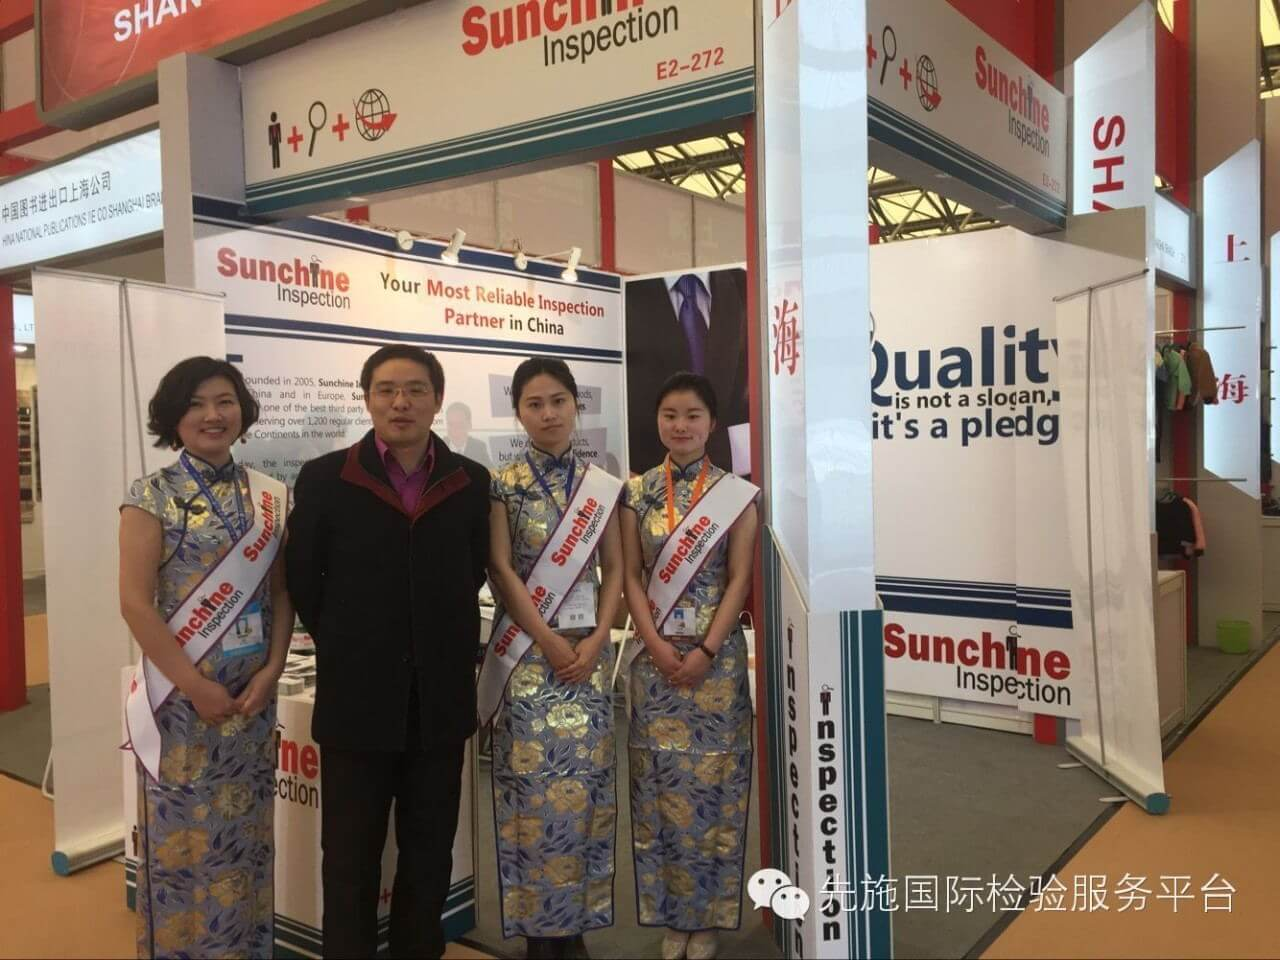 Sunchine at East China Import and Export Fair of the 26th (4)